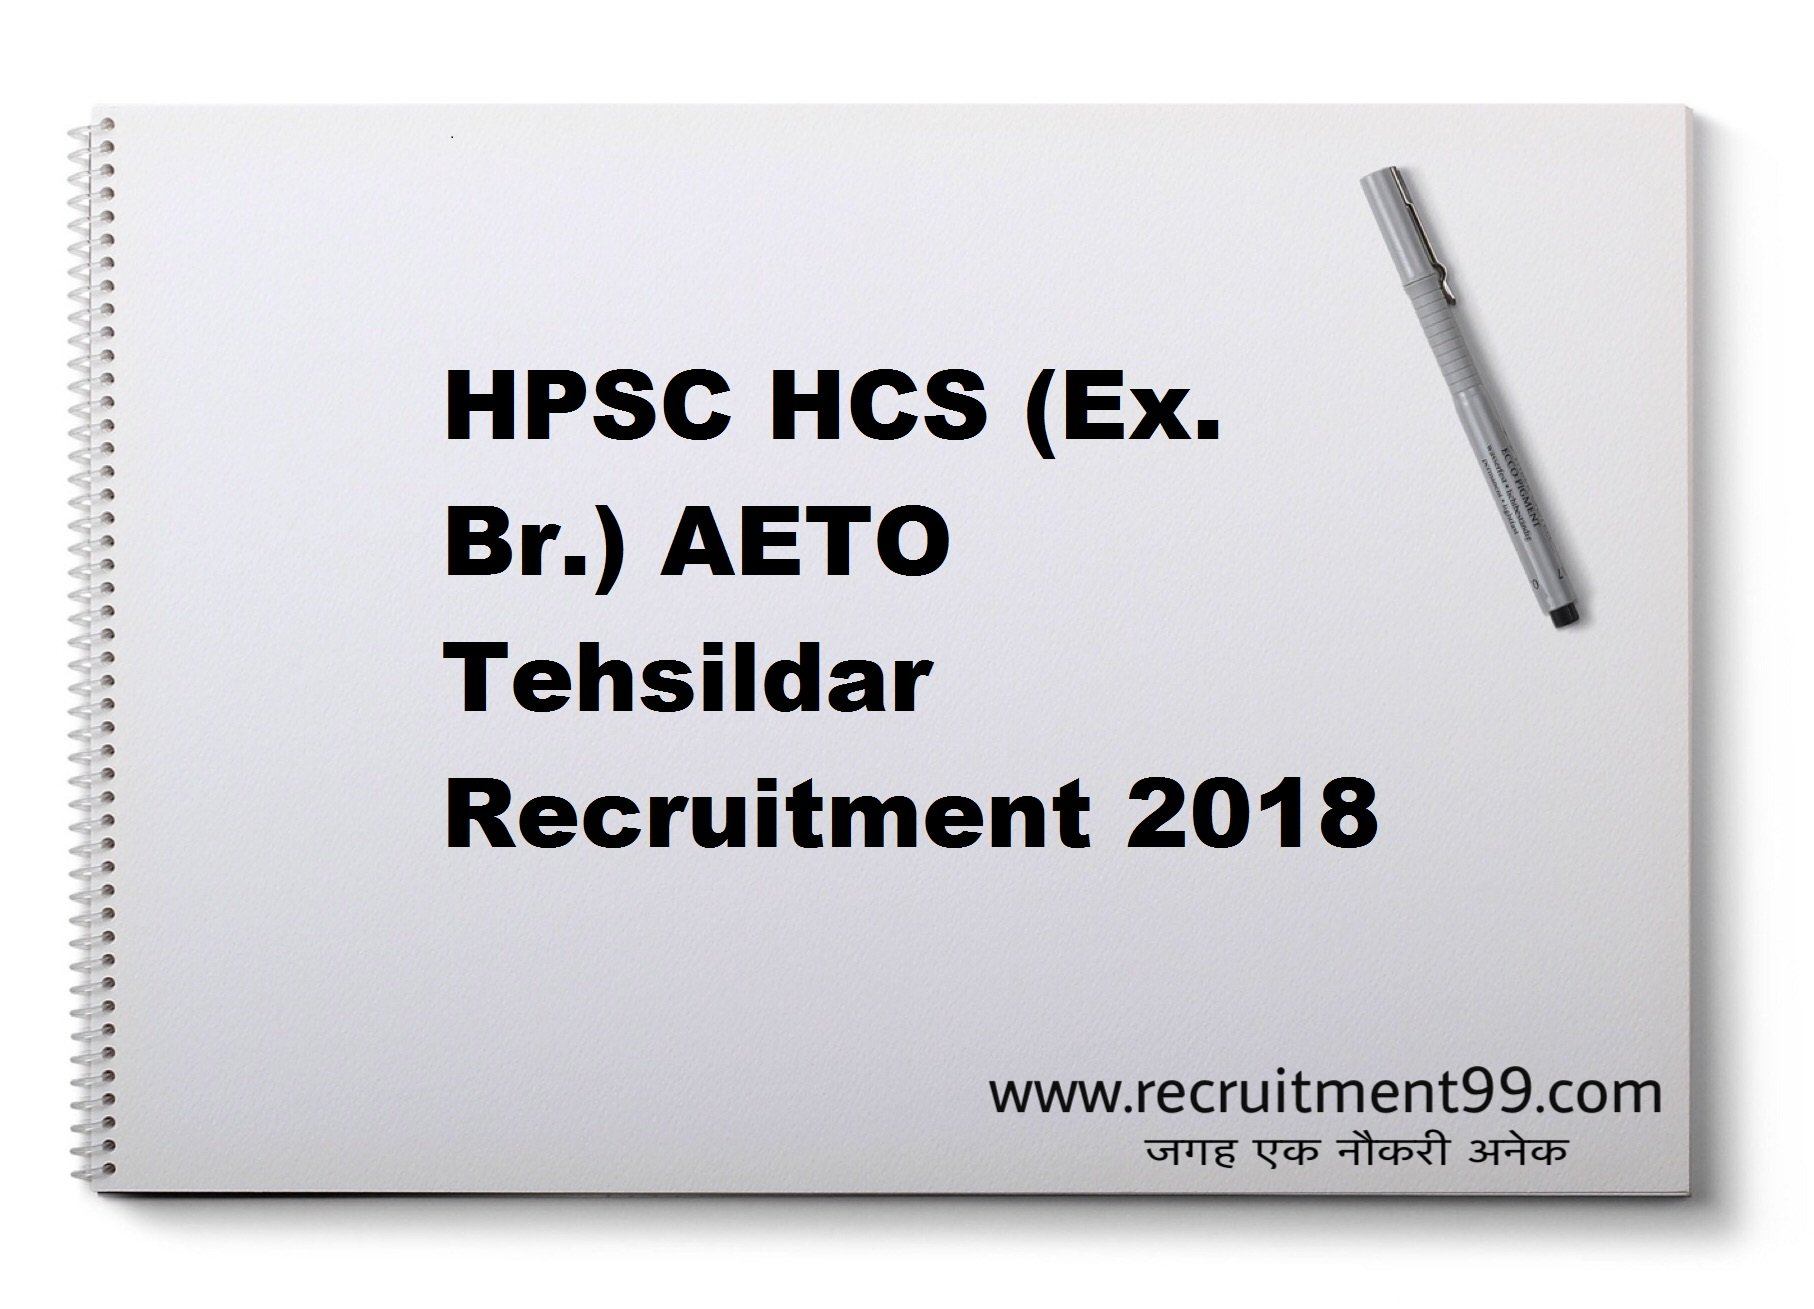 HPSC HCS (Ex. Br.) AETO Tehsildar Recruitment Admit Card Result 2018